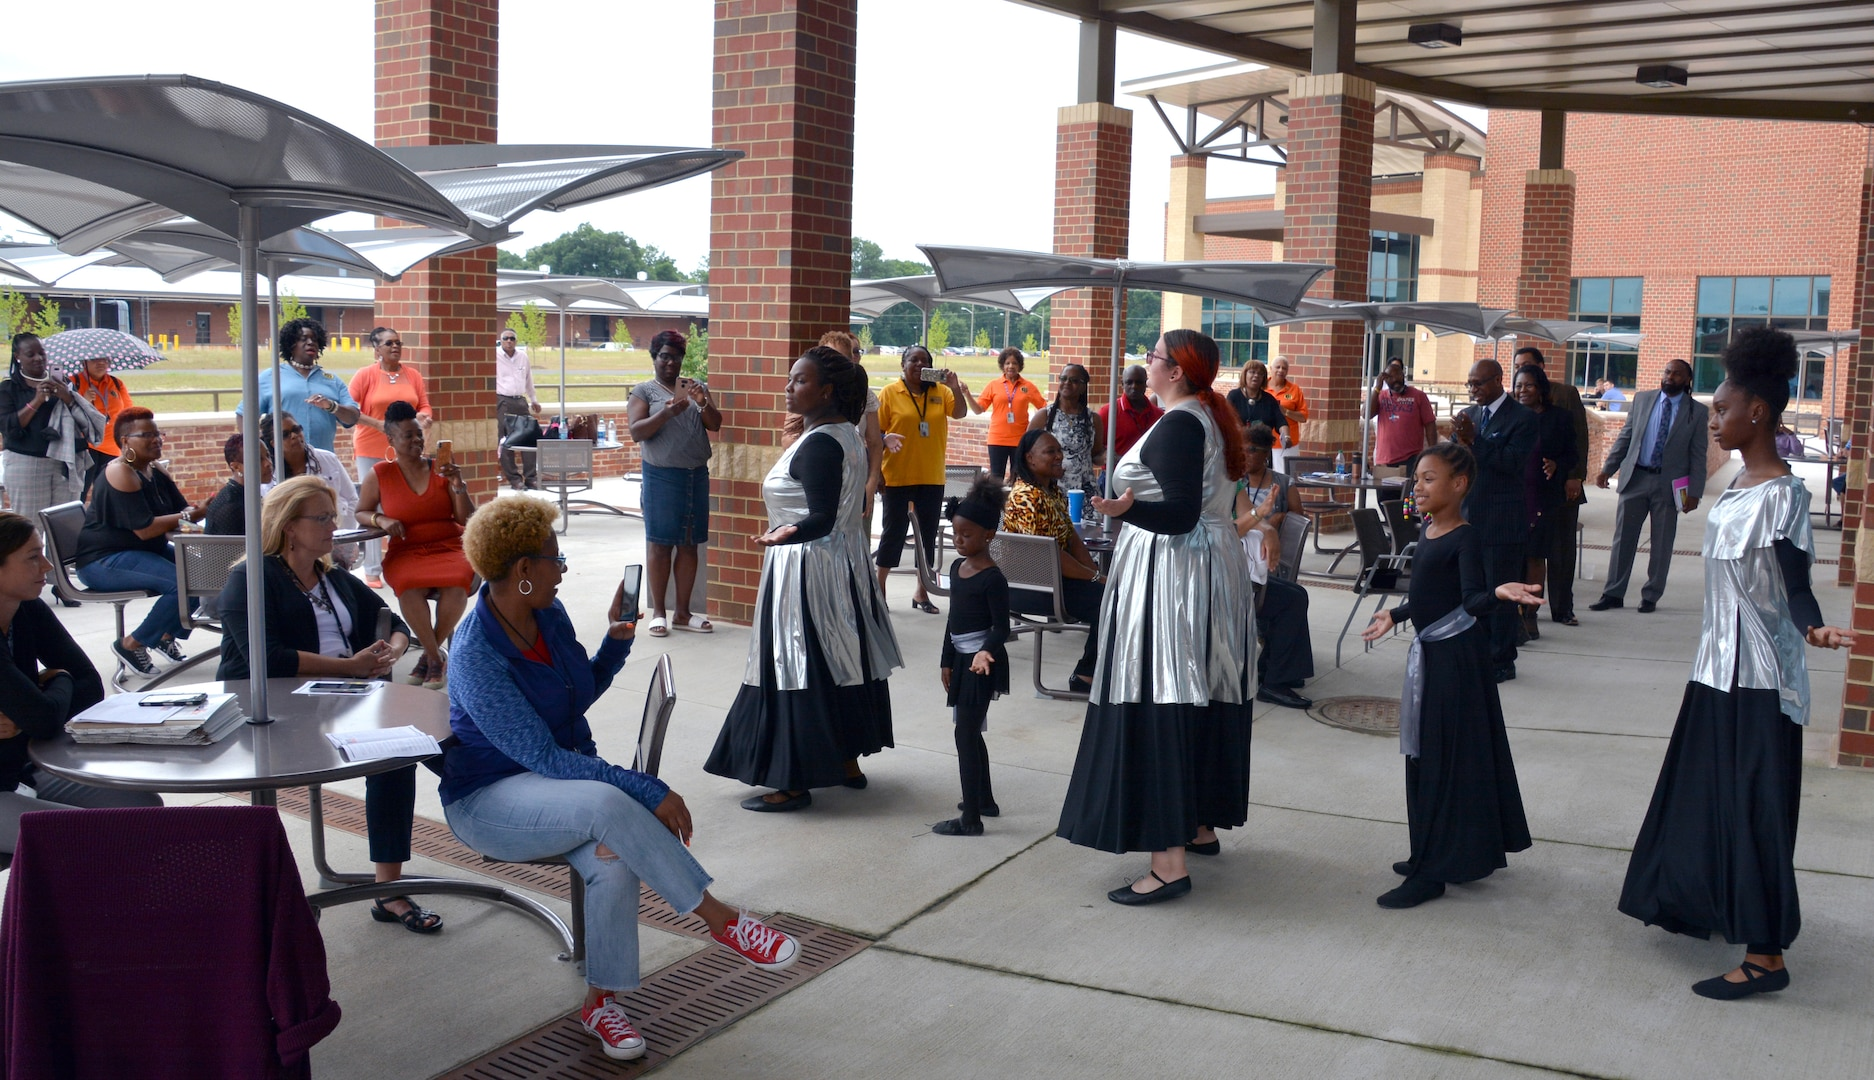 Annual event celebrating the end of slavery held on DCSR